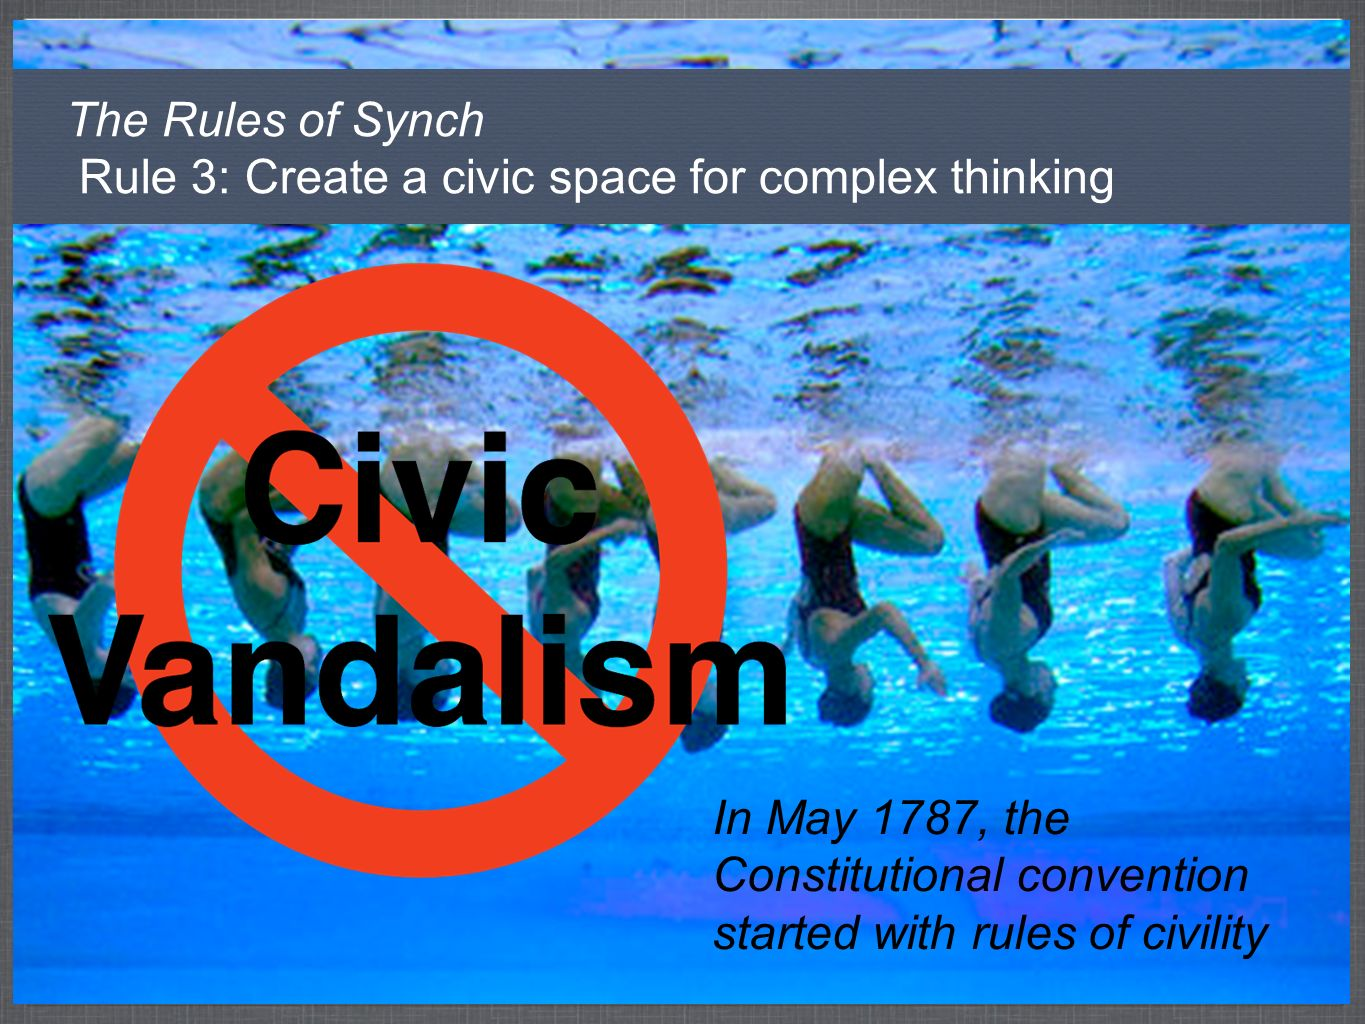 The Rules of Synch Rule 3: Create a civic space for complex thinking In May 1787, the Constitutional convention started with rules of civility